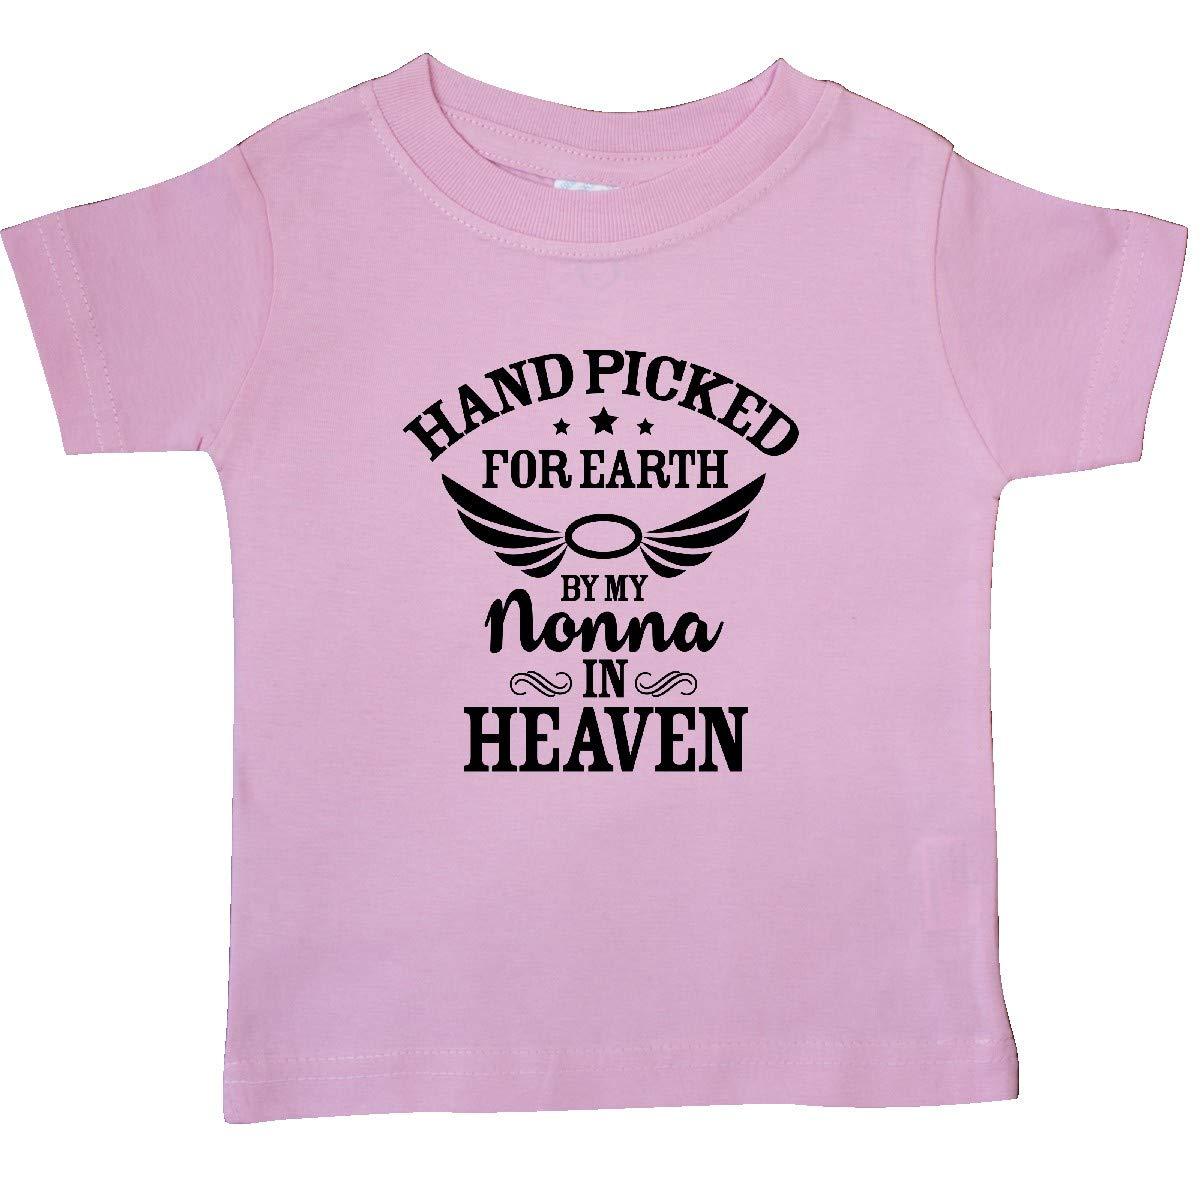 inktastic Handpicked for Earth by My Nonna in Heaven Baby T-Shirt